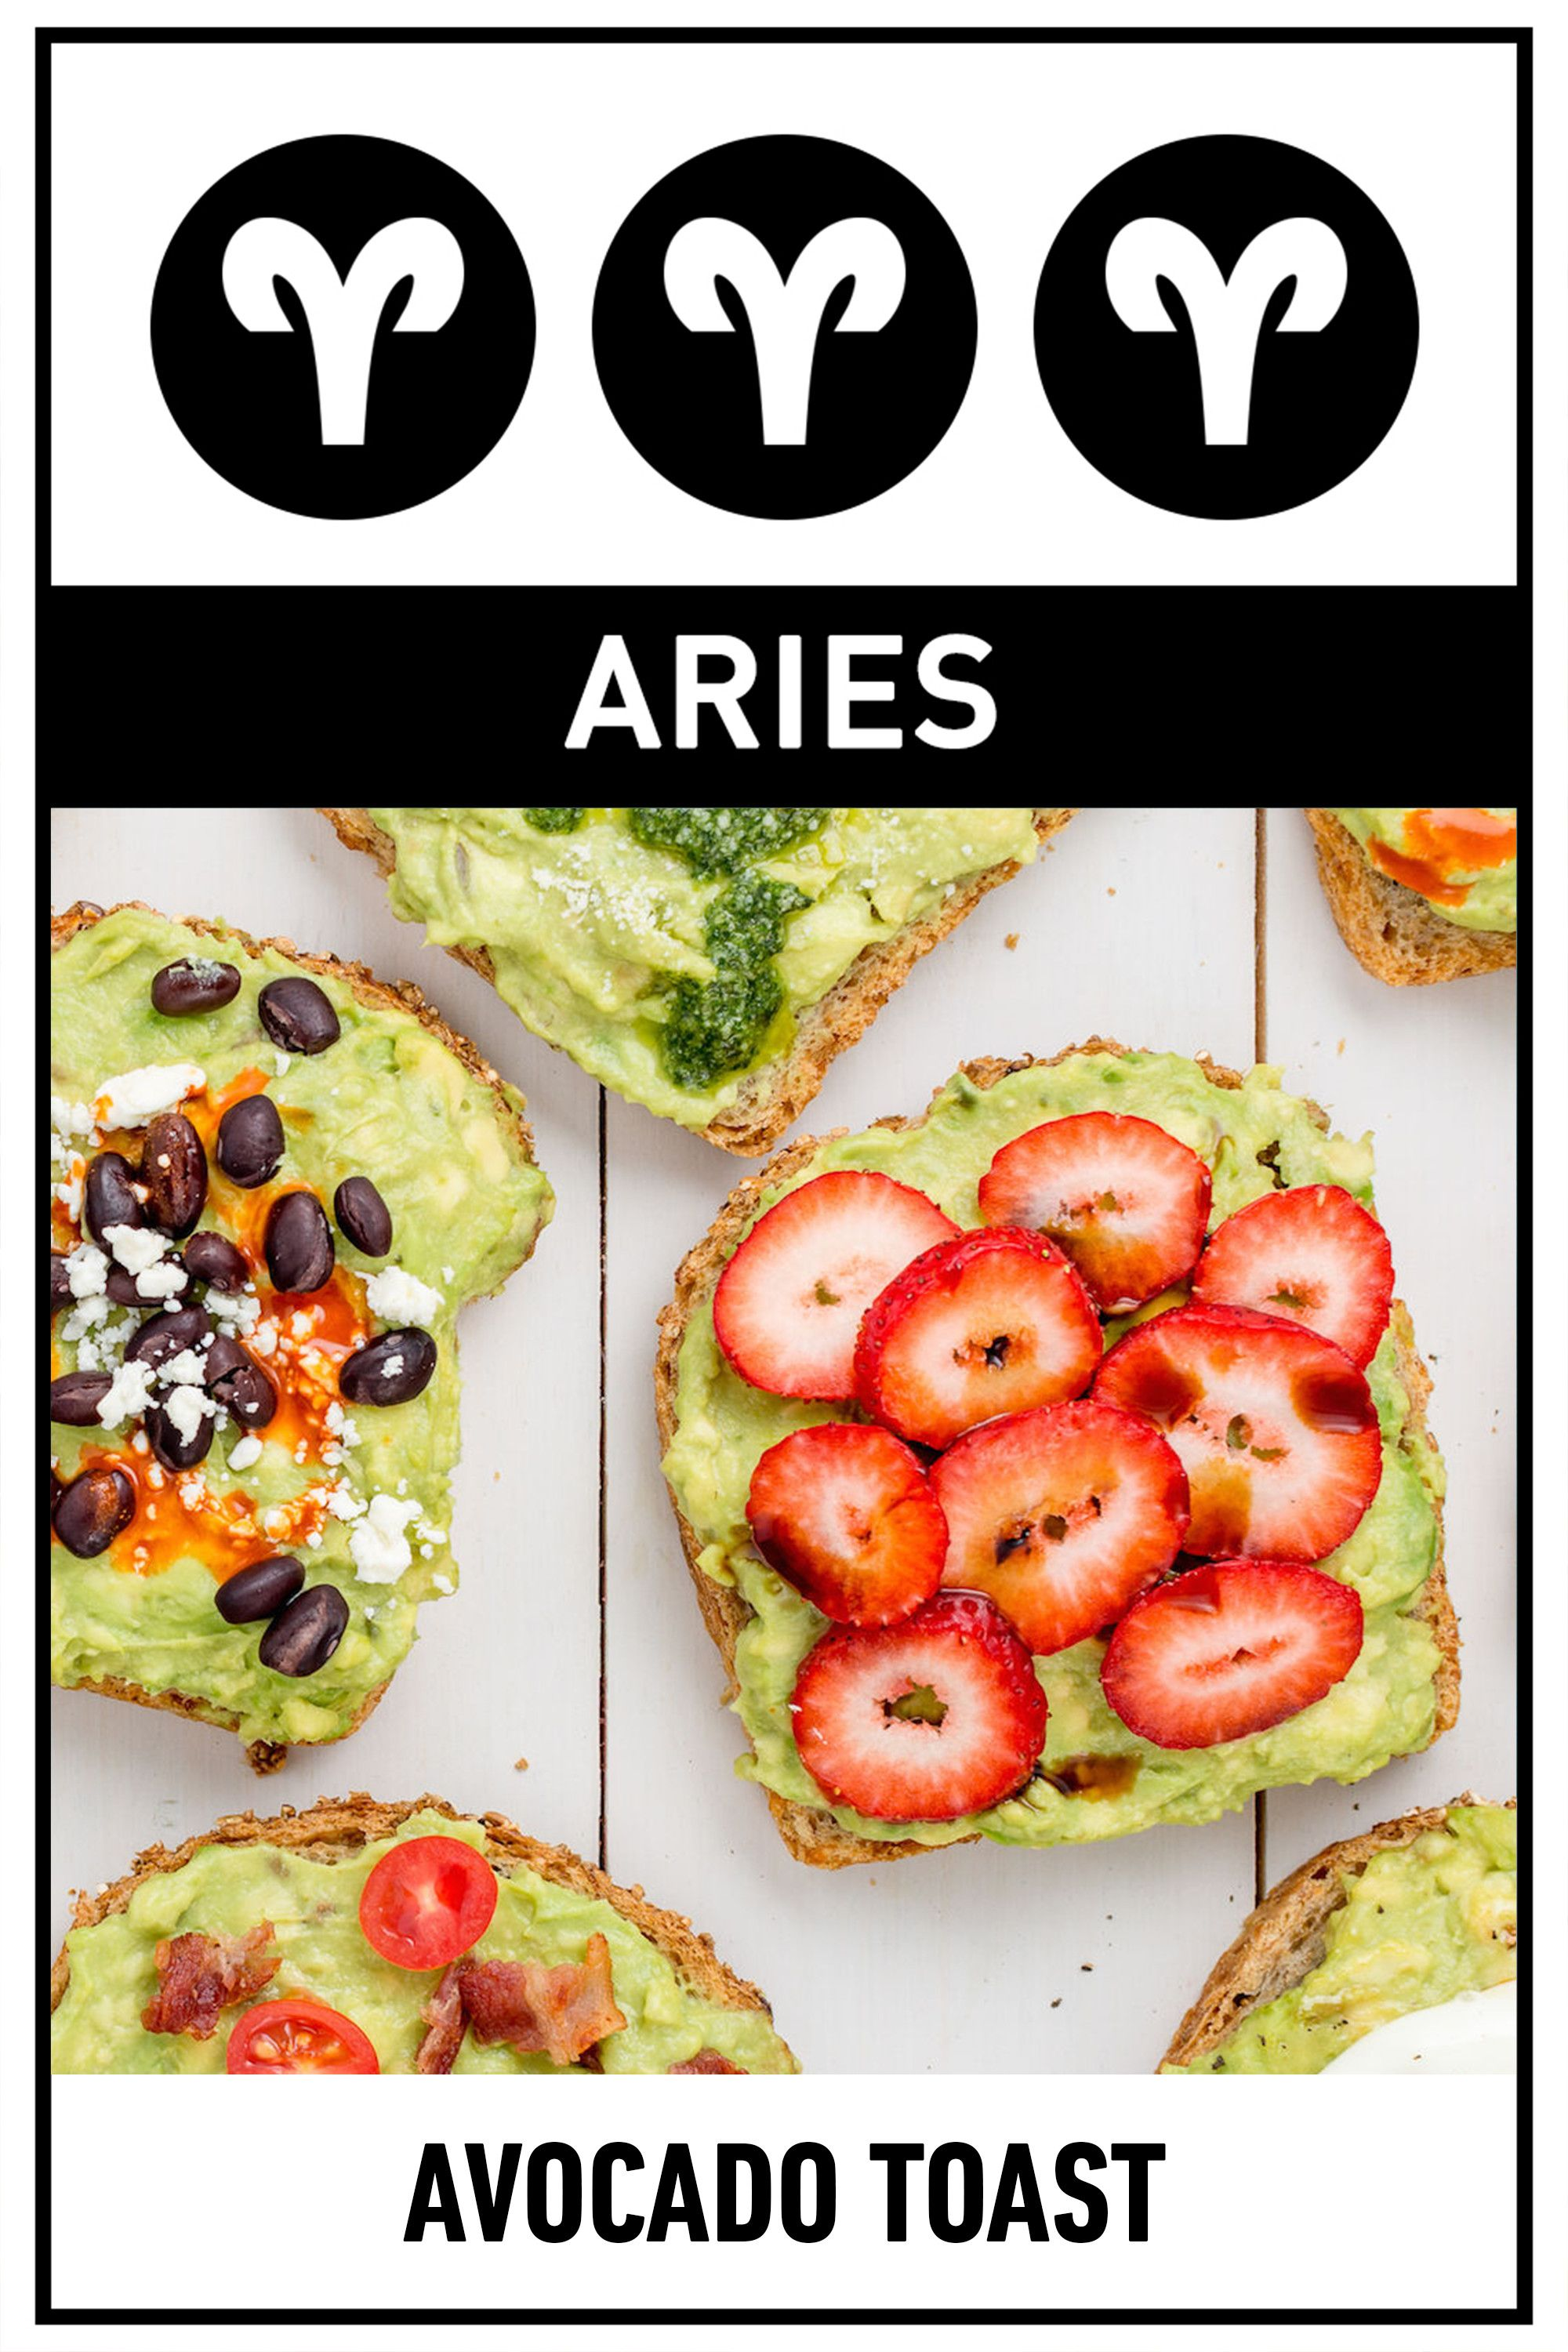 "<p><strong>Your Perfect Breakfast:</strong> Avocado Toast</p><p><strong>Why:</strong> You're the first one to try something new, so while your friends are still raving about overnight oats, you've already moved on to avocado toast. Aries are known for their drive—and for keeping active—which is why you need a breakfast that can fill you up without weighing you down.</p><p>Get the <a href=""http://www.delish.com/cooking/videos/a45499/avocado-toast-cheat-sheet/"">recipe</a>.</p>"